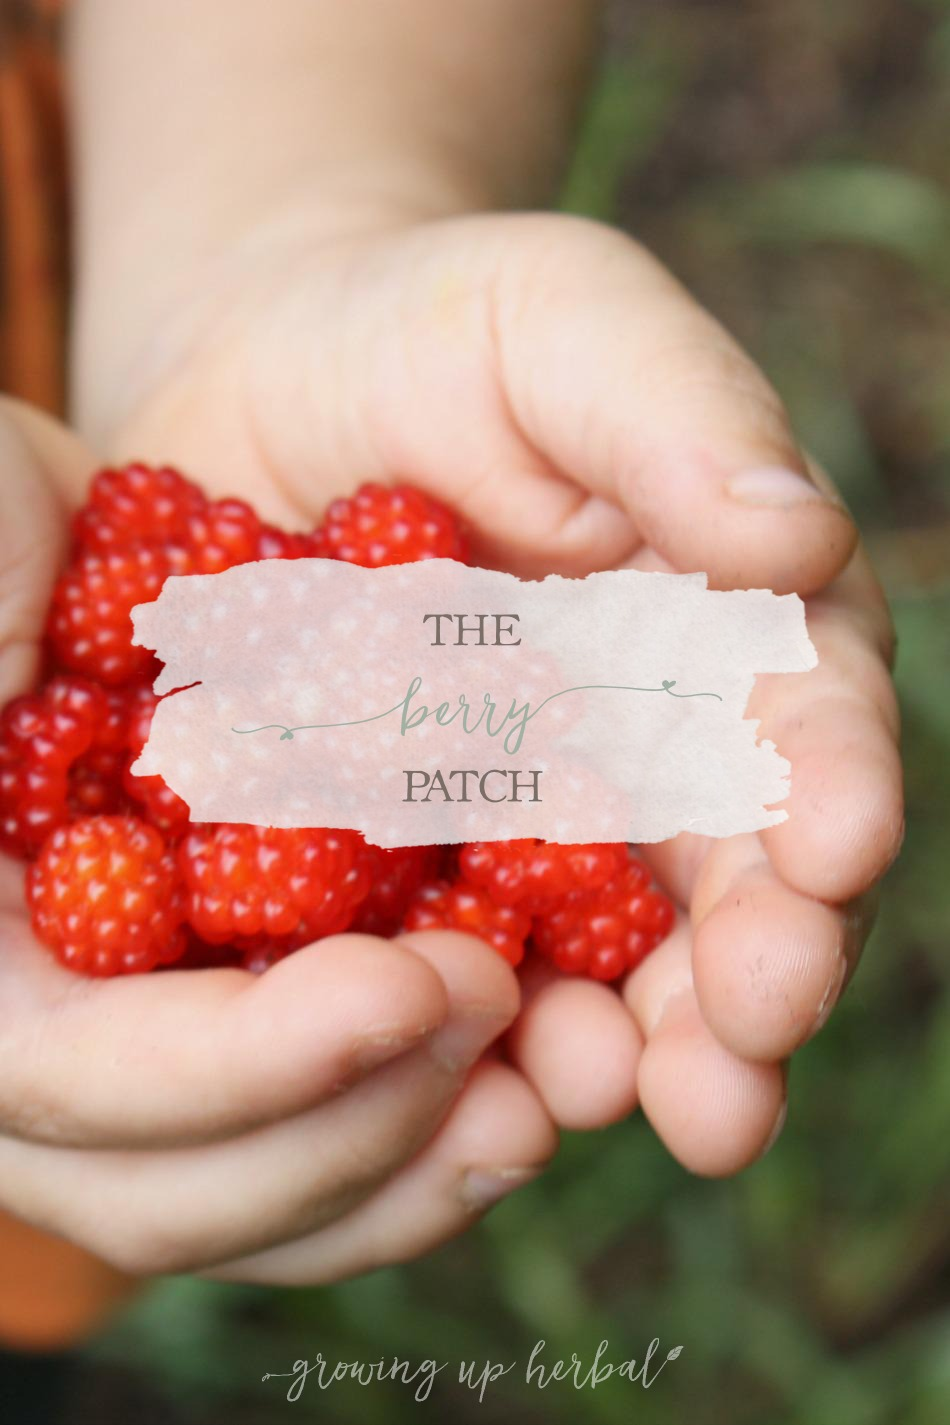 The Berry Patch | Growing Up Herbal | The boys are off on an adventure to a secret berry patch. Plus, learn why raspberries are so healthy for you!